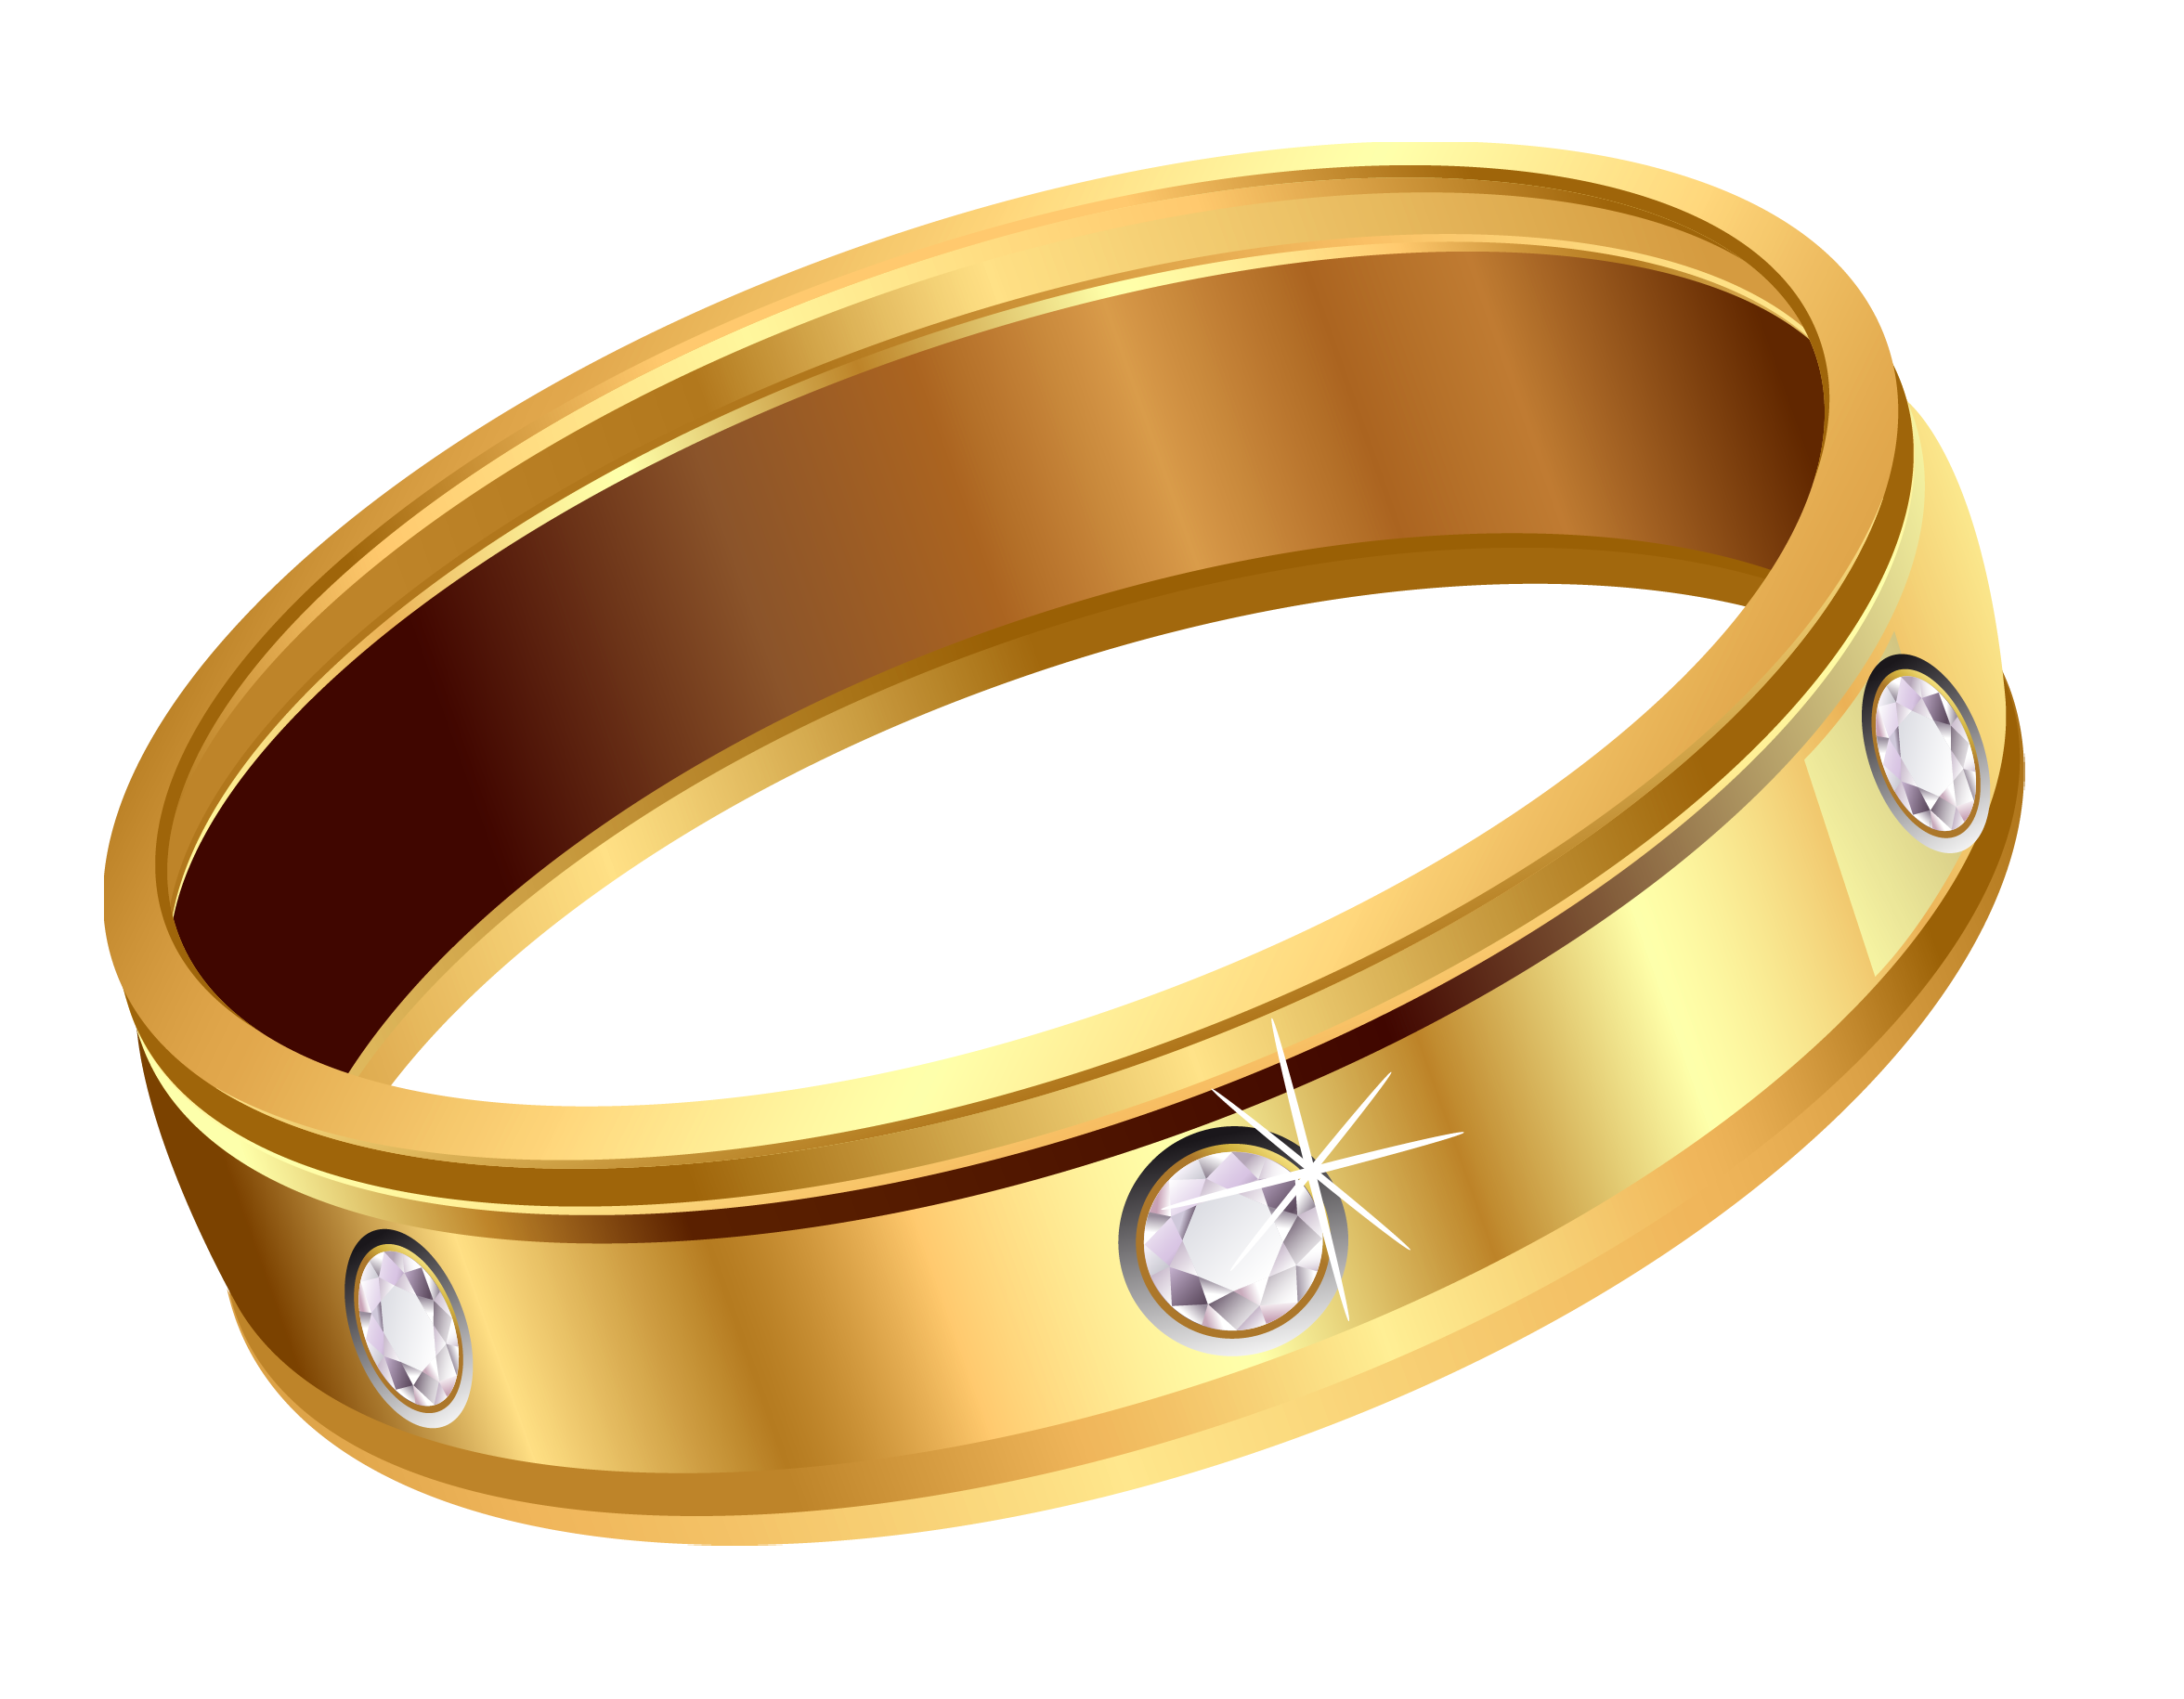 image freeuse Transparent Gold Ring with Diamonds PNG Clipart